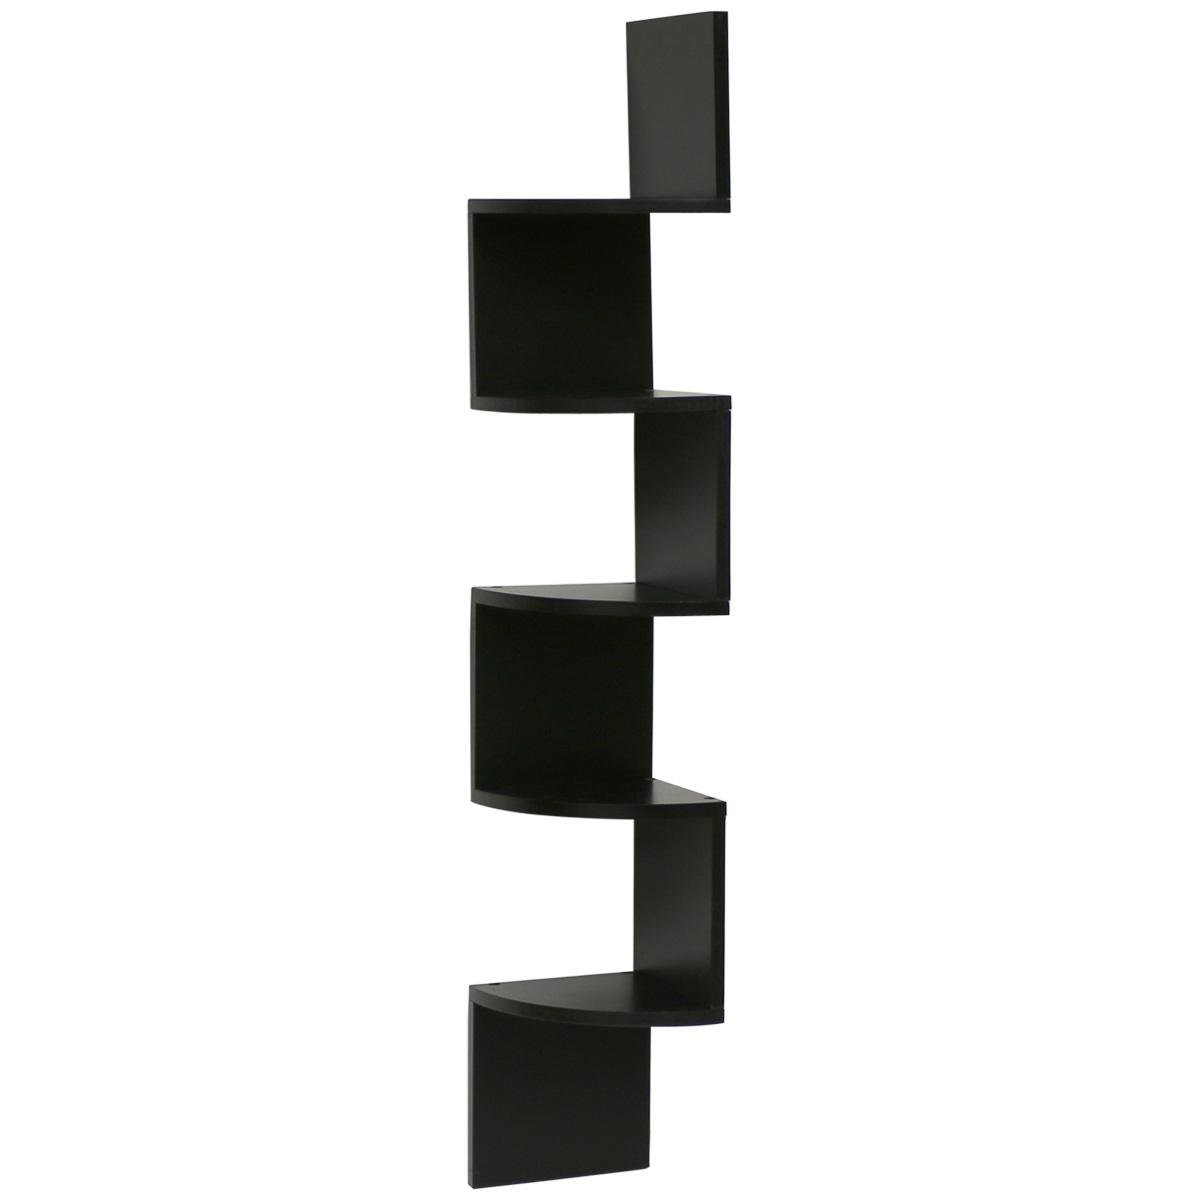 image-Hartleys Zig Zag Corner Wall Shelf Unit - Black - Large